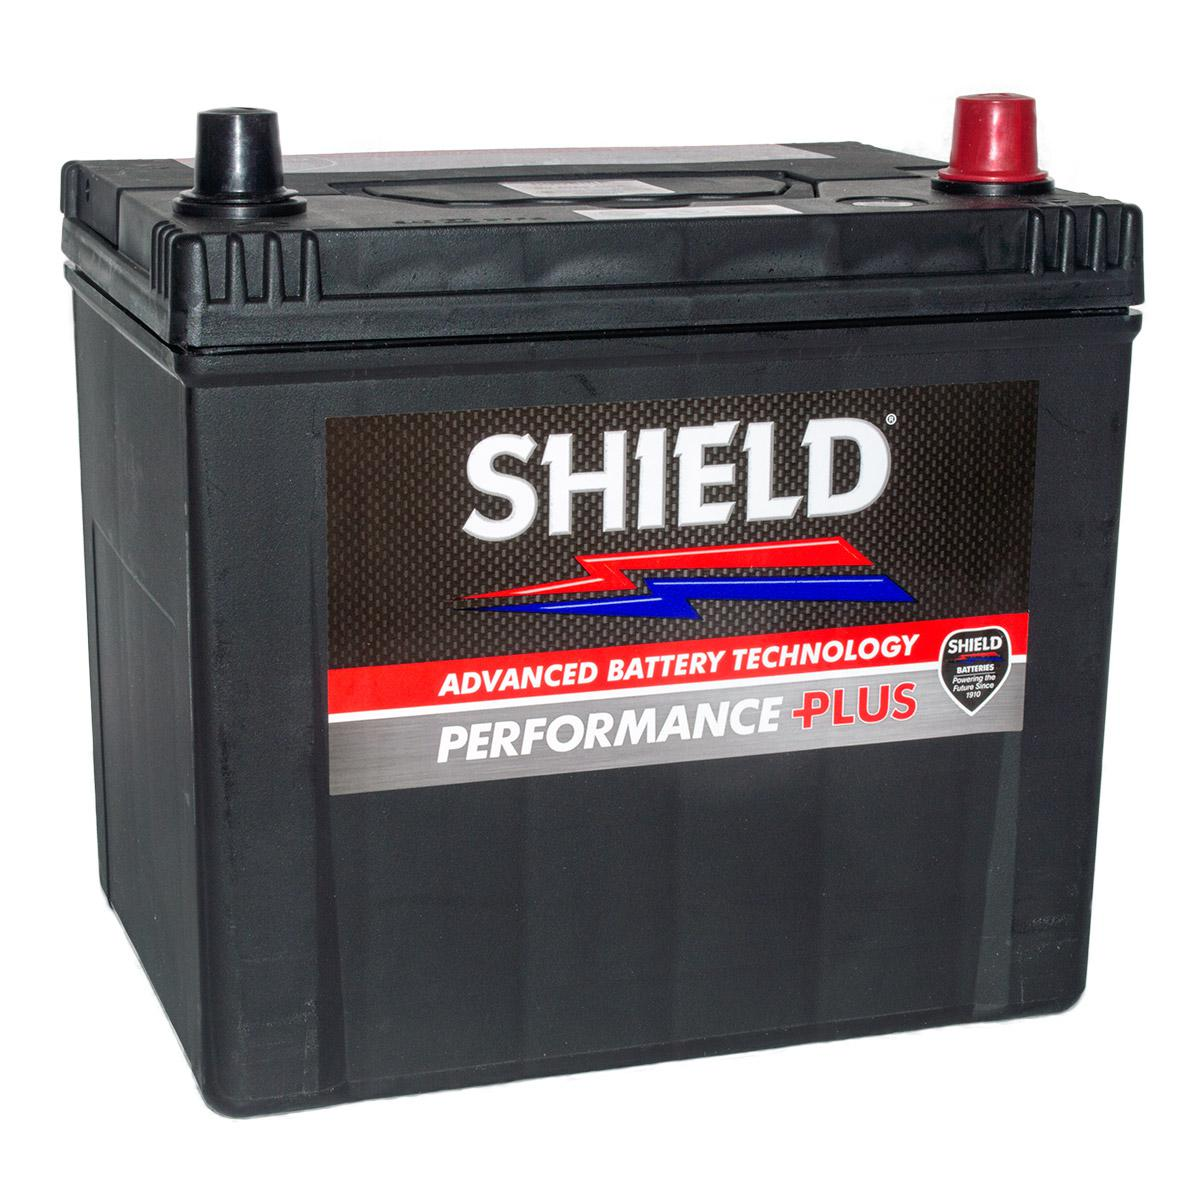 Performance Plus - SMF